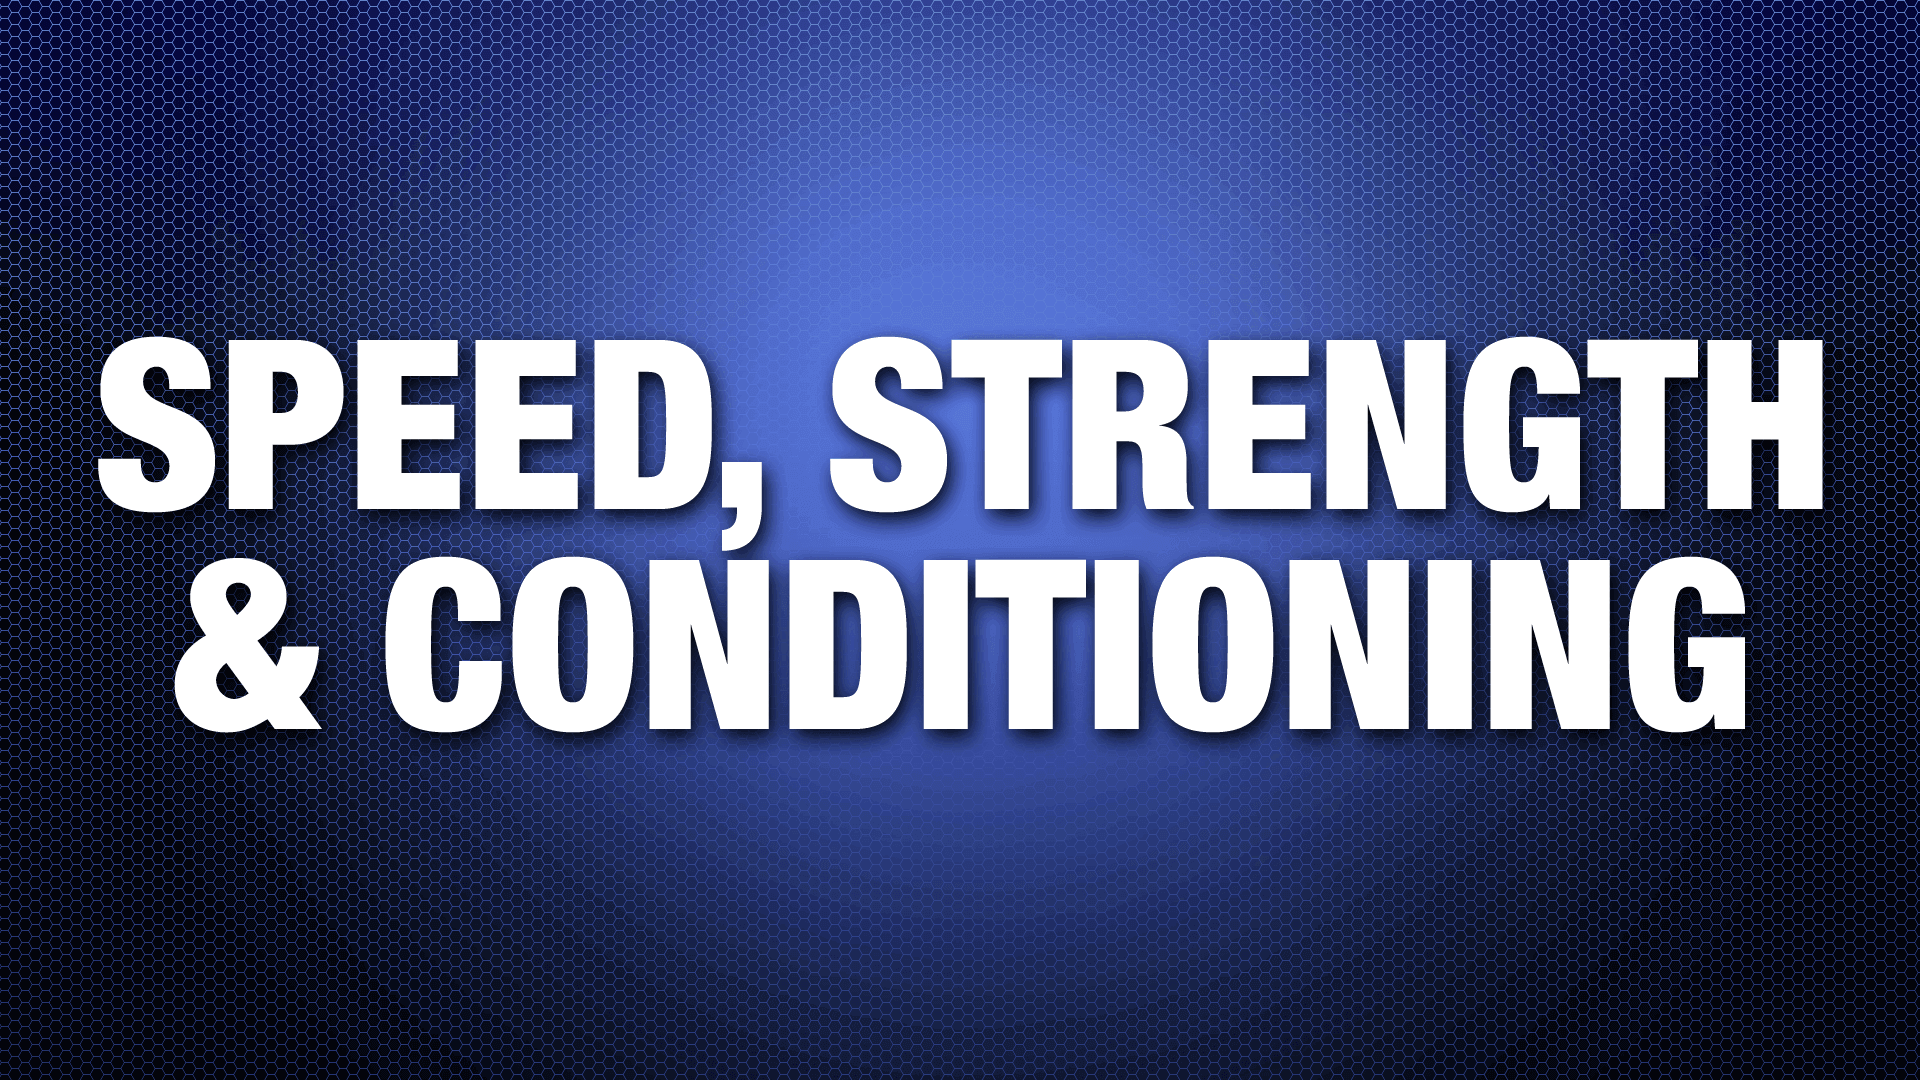 SpeedStrengthConditioning